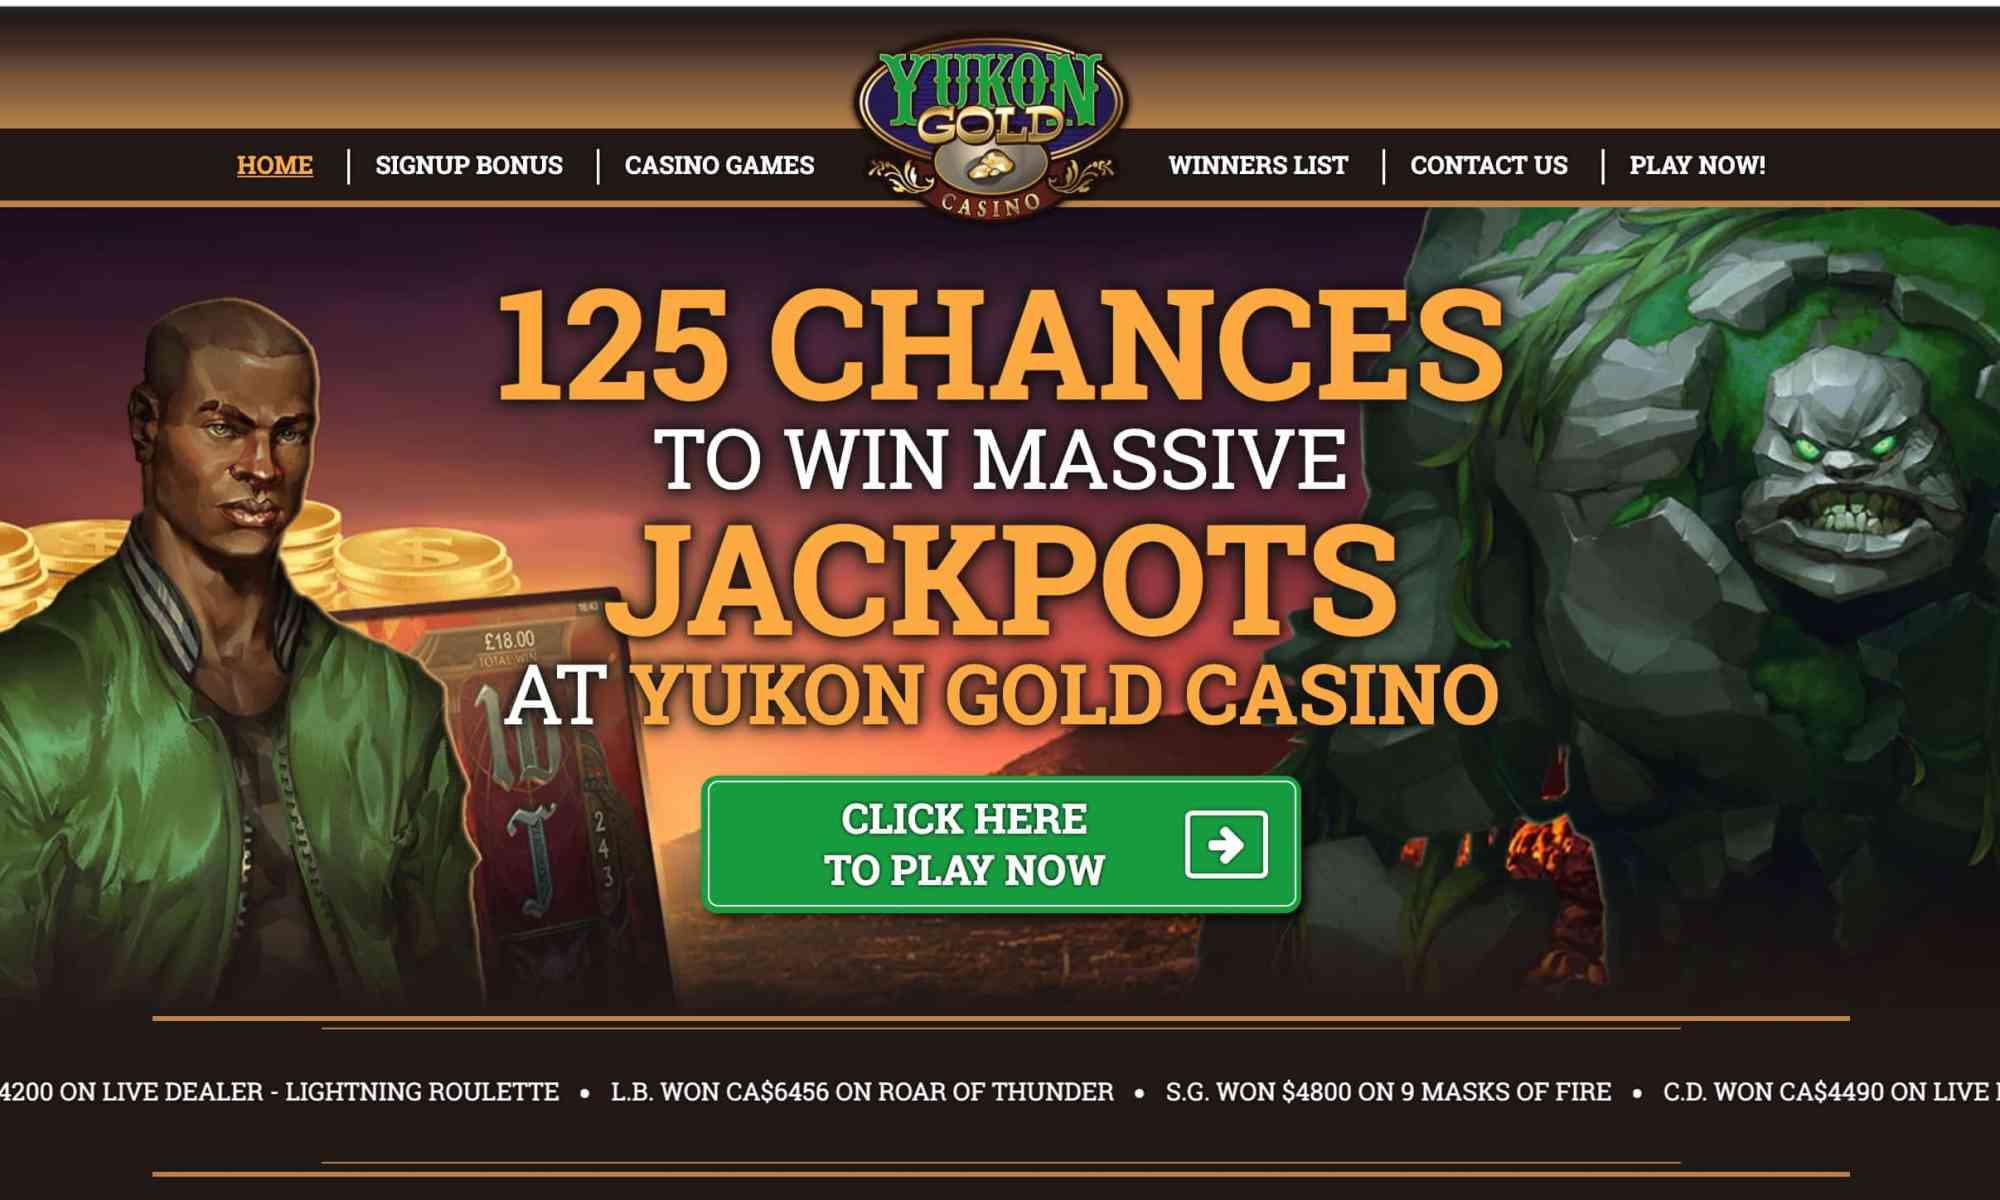 Yukon Gold Casino: Win Jackpots With 125 Chances On Roulette